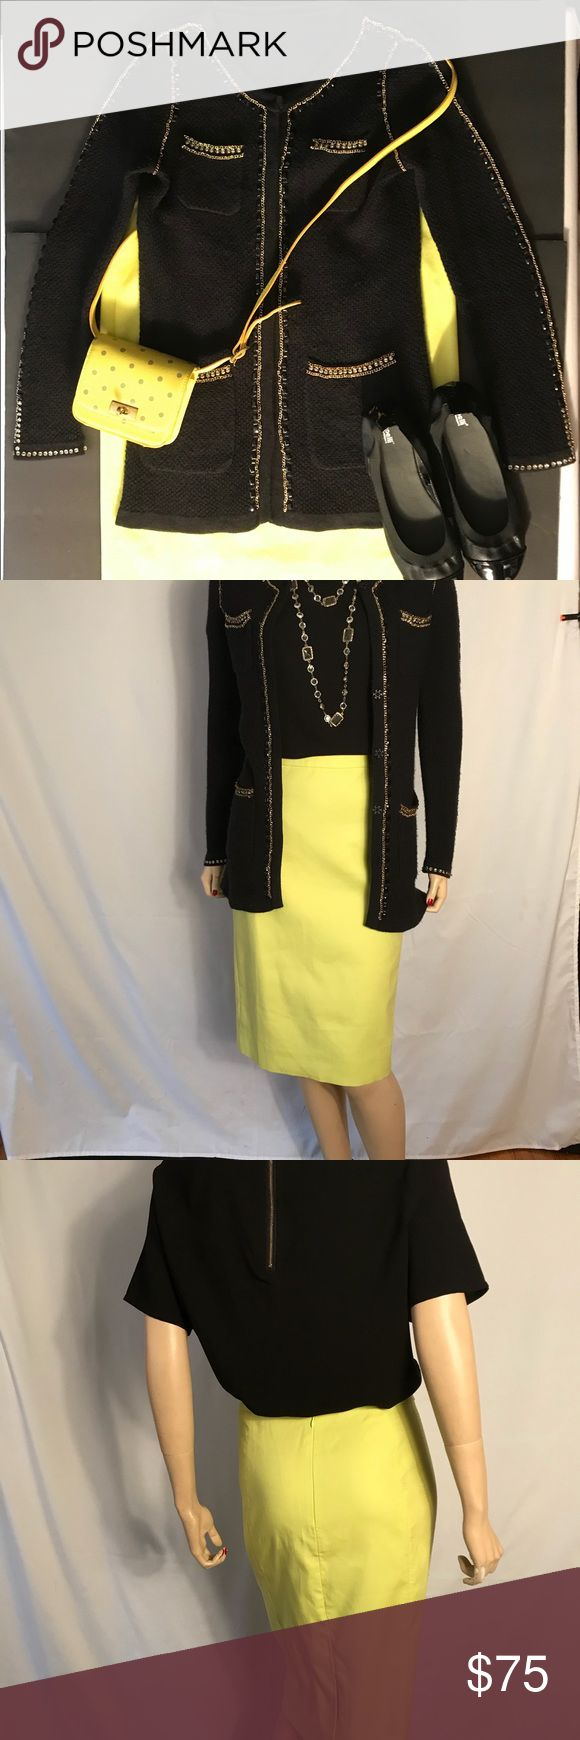 "J Crew Neon Green Pencil Skirt This is a versatile J.Crew Black Label Pencil Skirt which will add that eye-catching  pop of color to your wardrobe. It works well with Gold as seen in the first pic.   Size 10  Waist:34"" Hip:40"" Length:24 1/2""  Condition is New Without Tag. J. Crew Skirts"